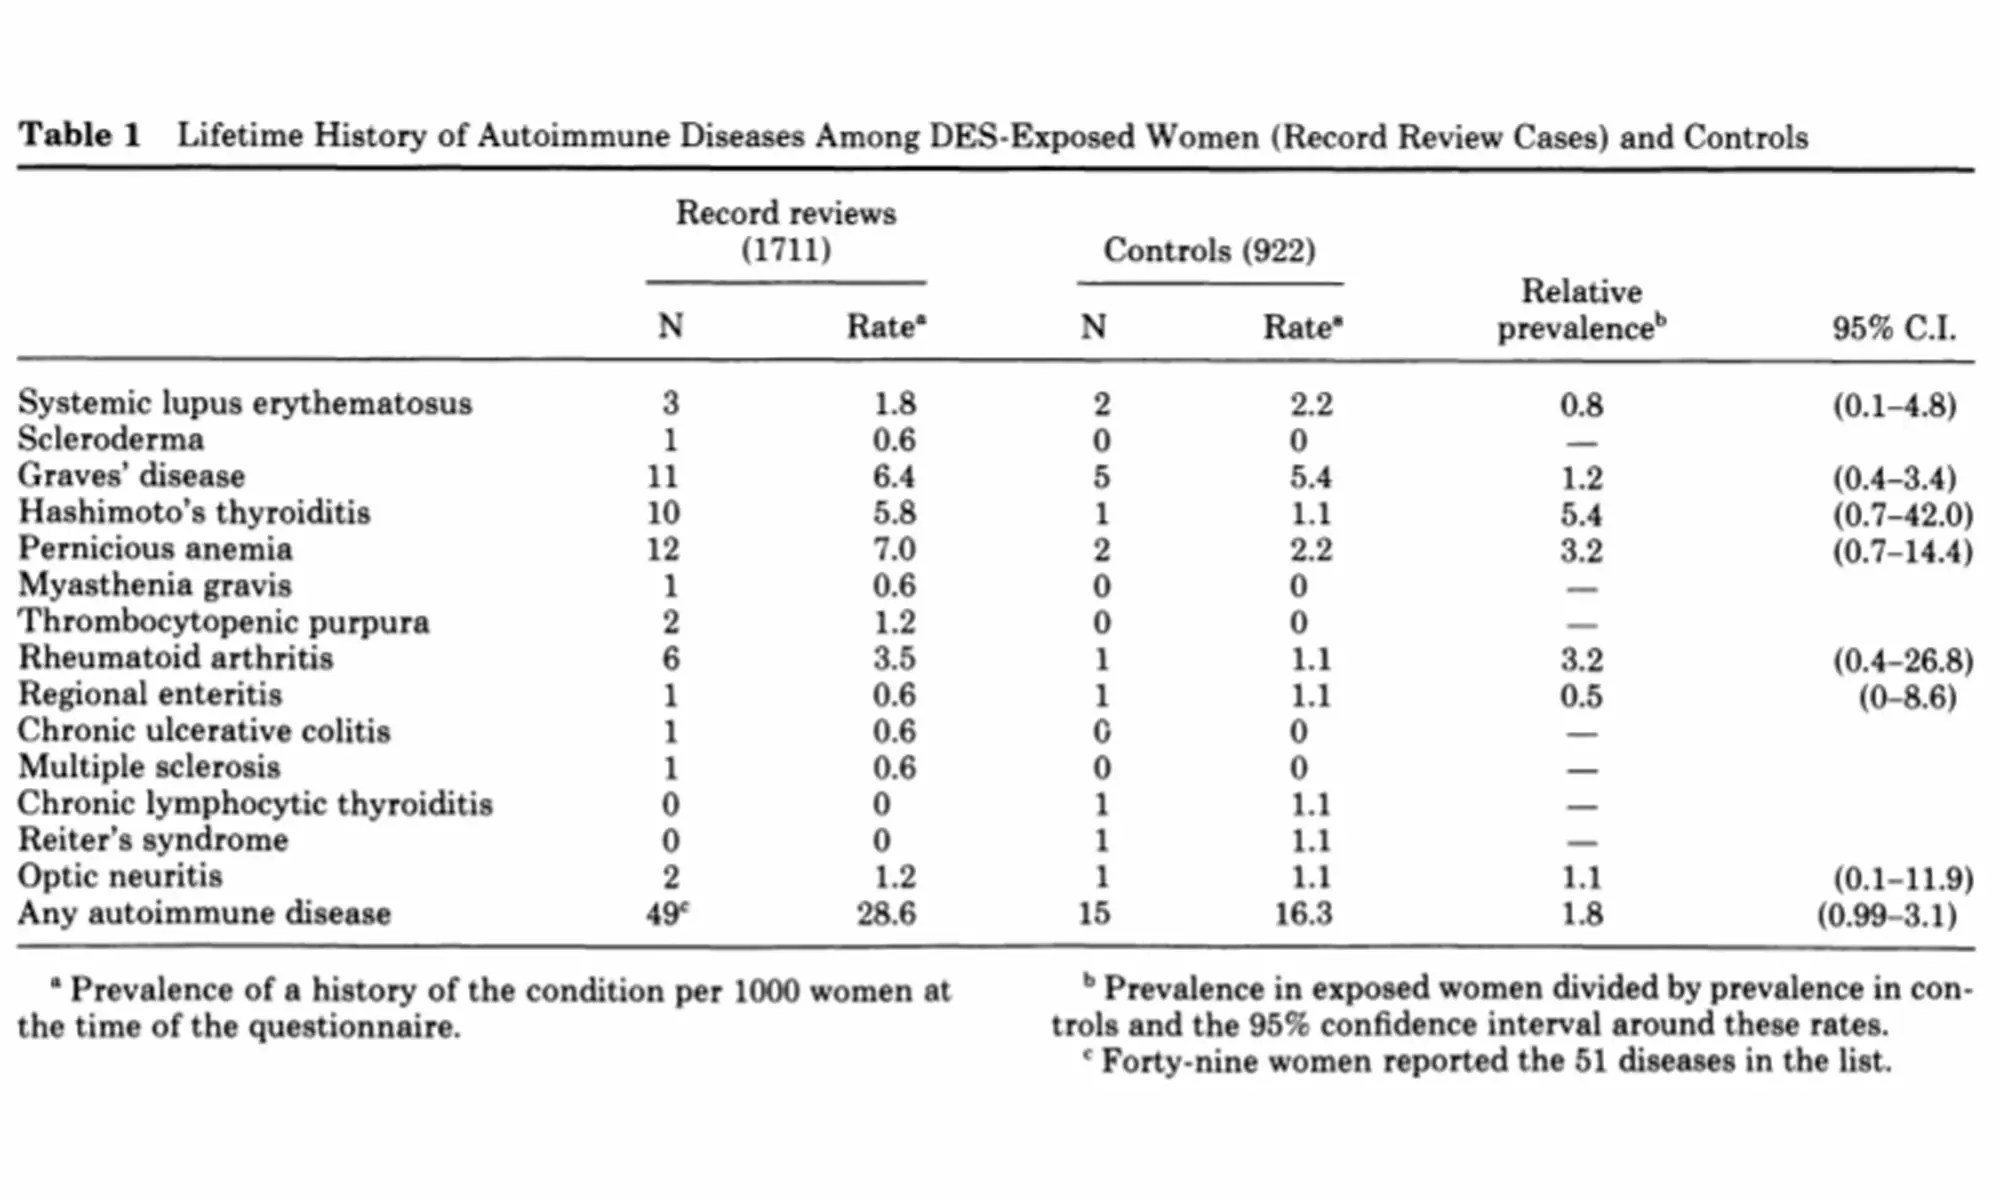 Prenatal DES exposure and increased occurrence of autoimmune disease